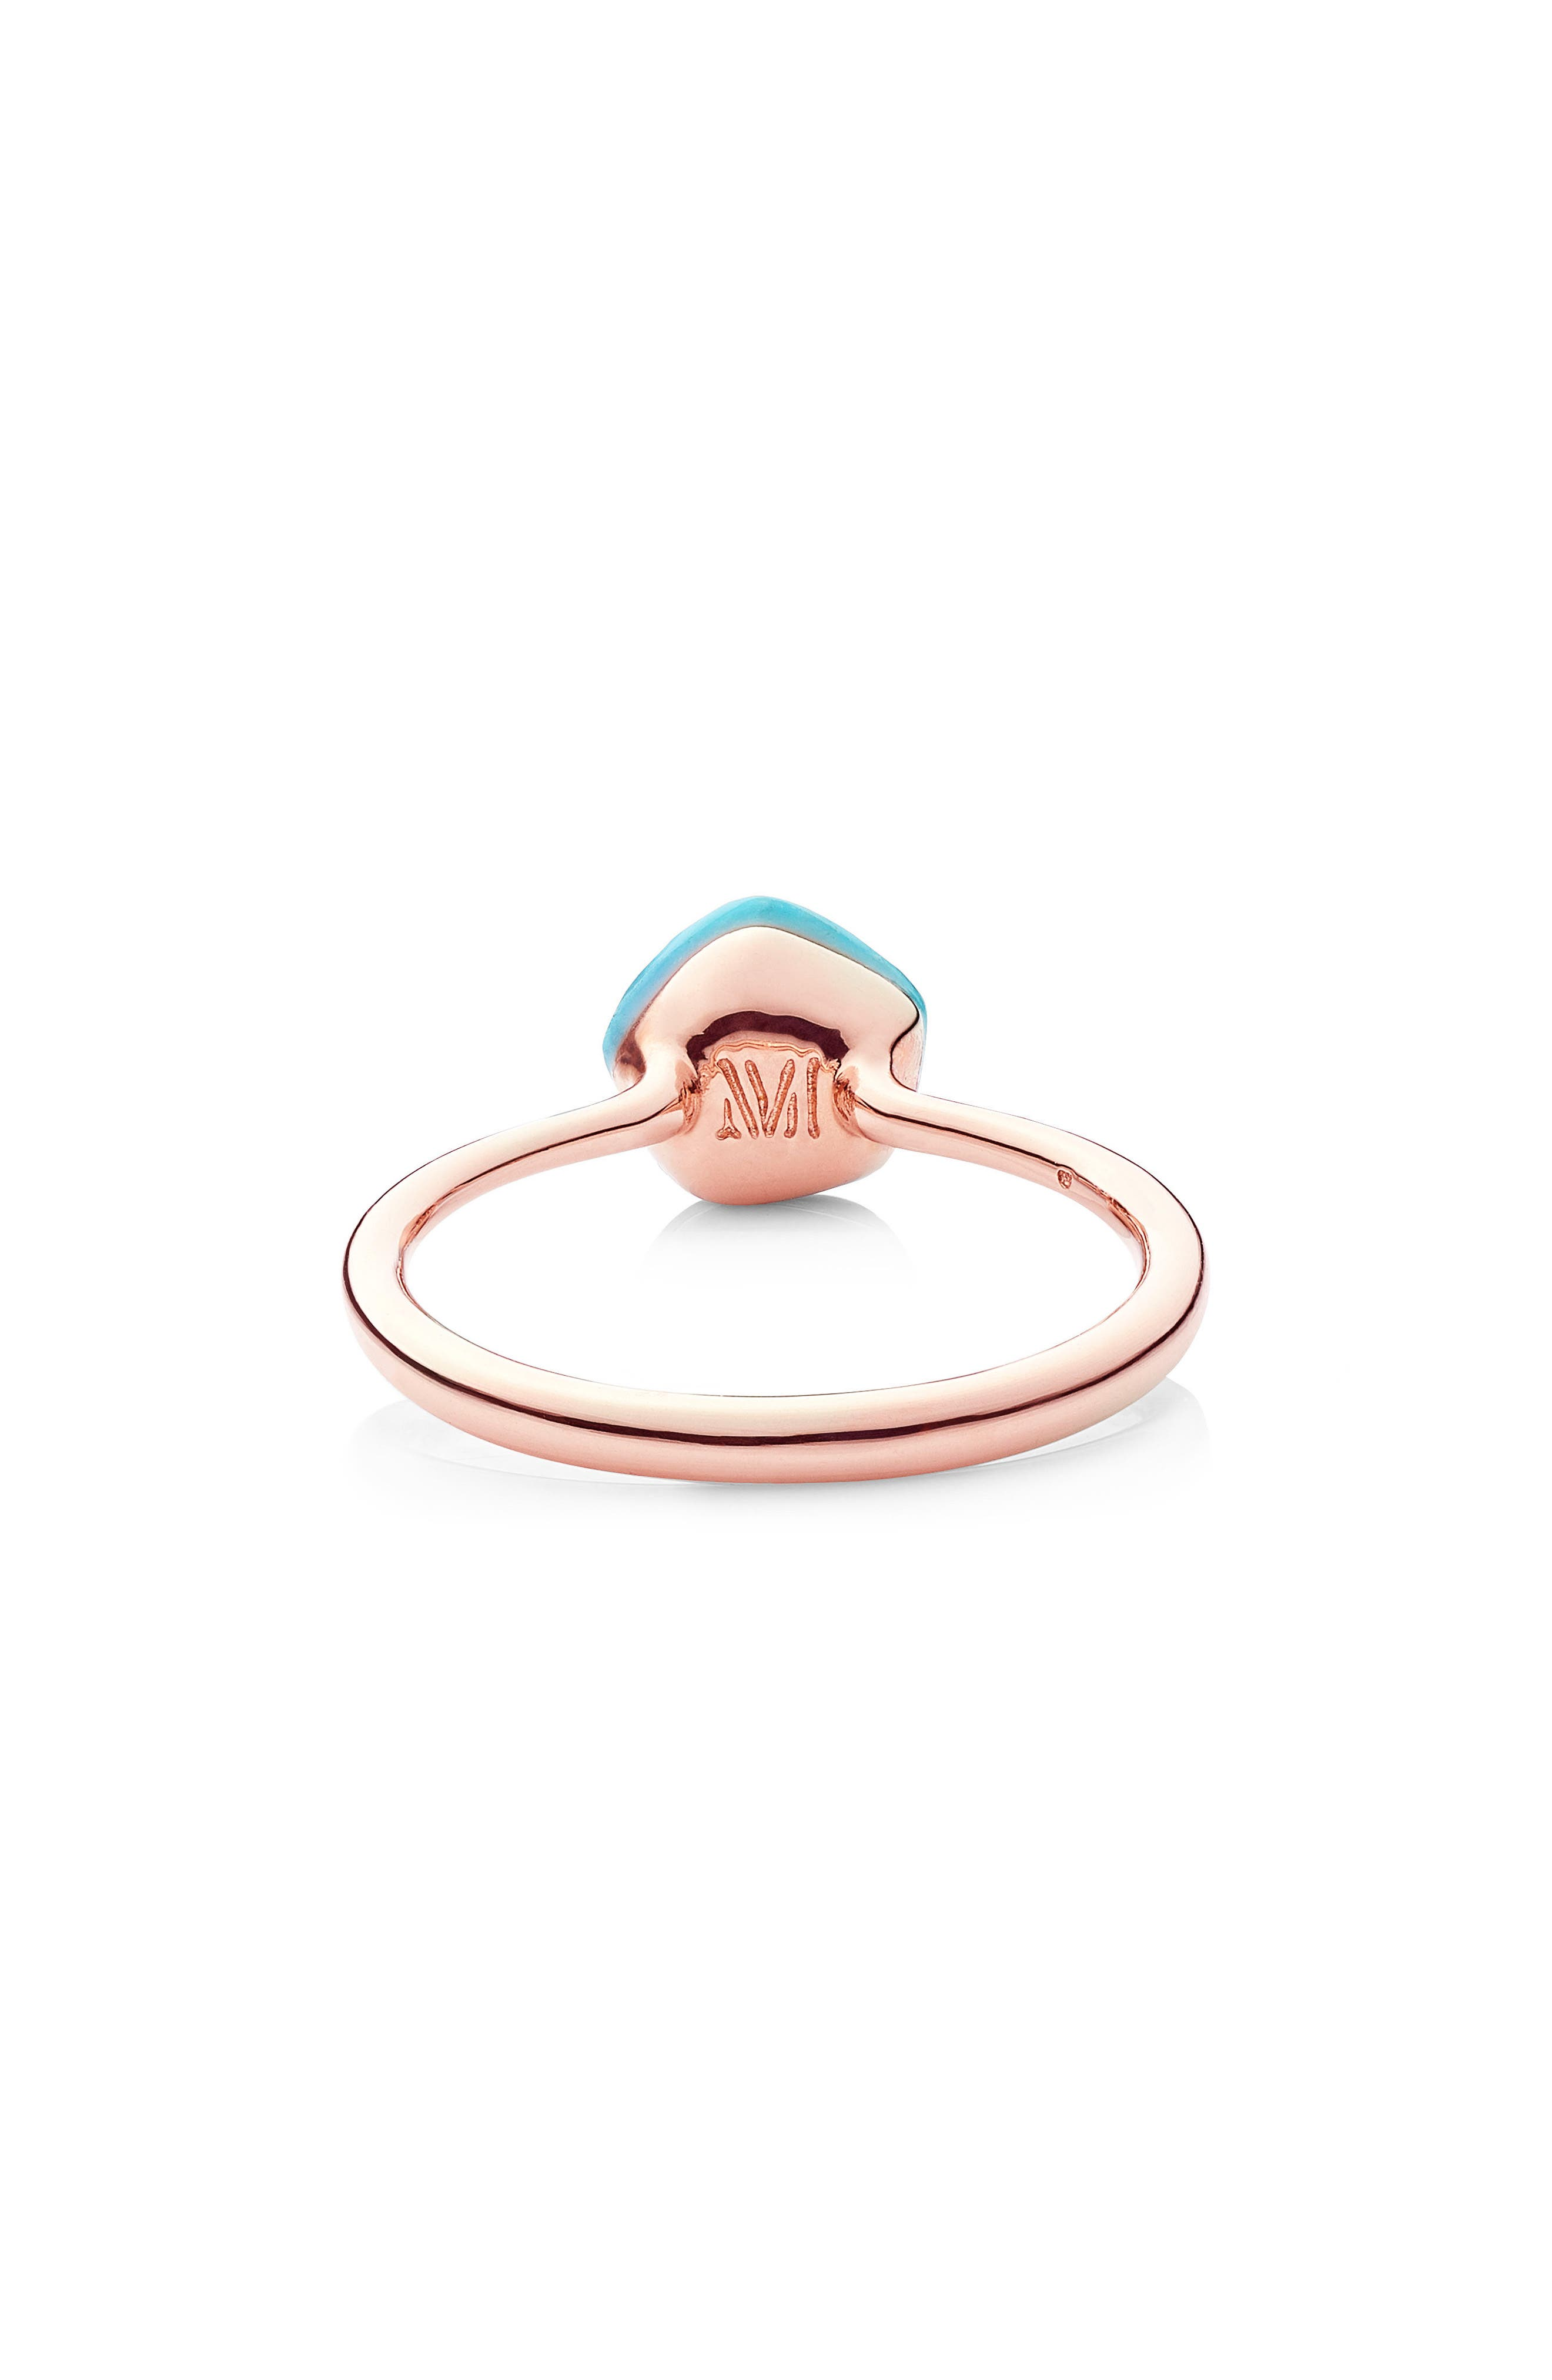 Nura Mini Nugget Stacking Ring,                             Alternate thumbnail 3, color,                             TURQUOISE